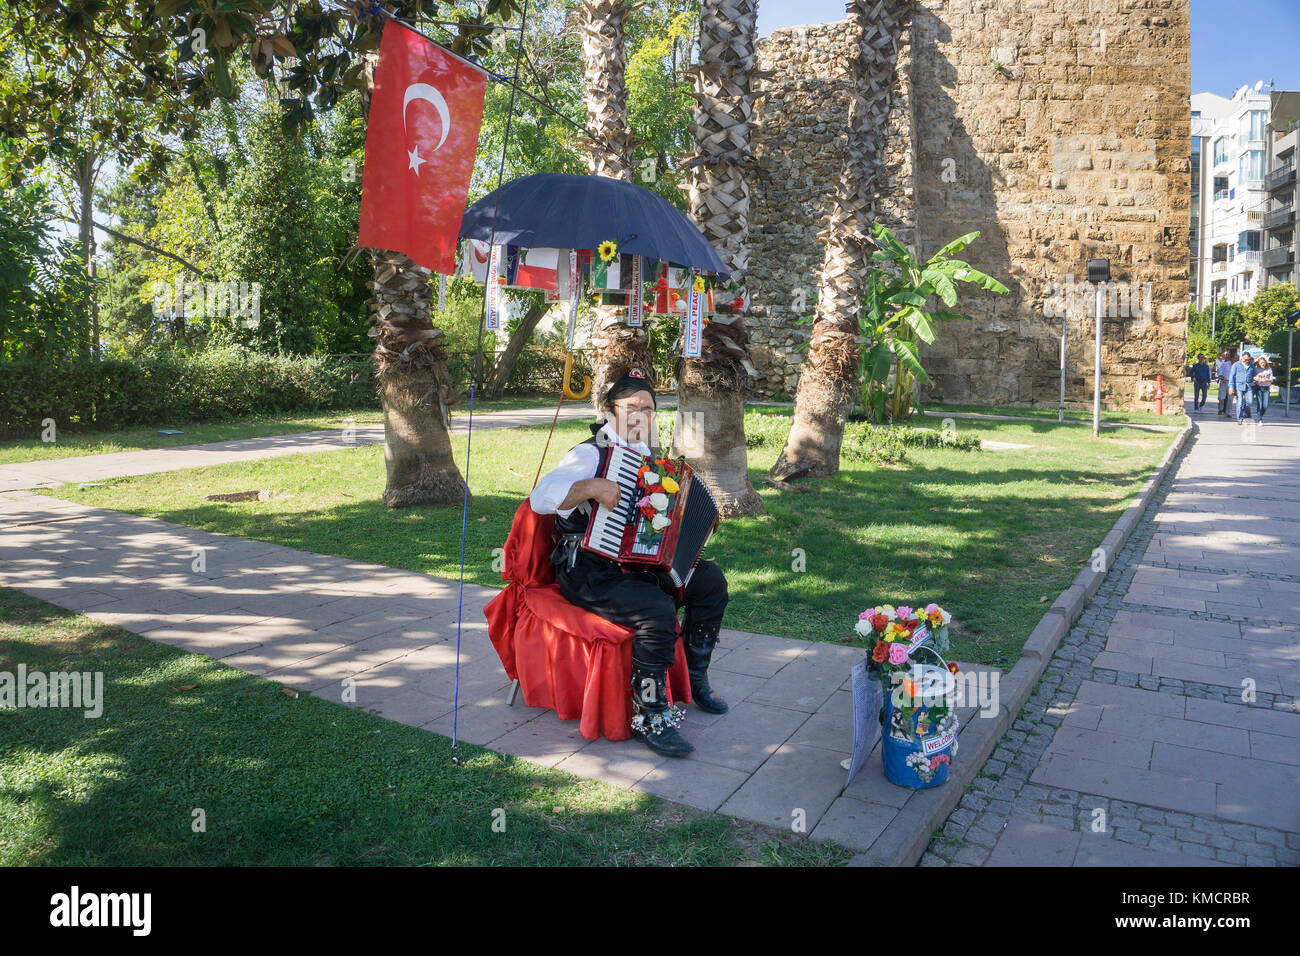 Street musican at Kalekapisi place, upper border to Kaleici, the old town of Antalya, turkish riviera, Turkey - Stock Image